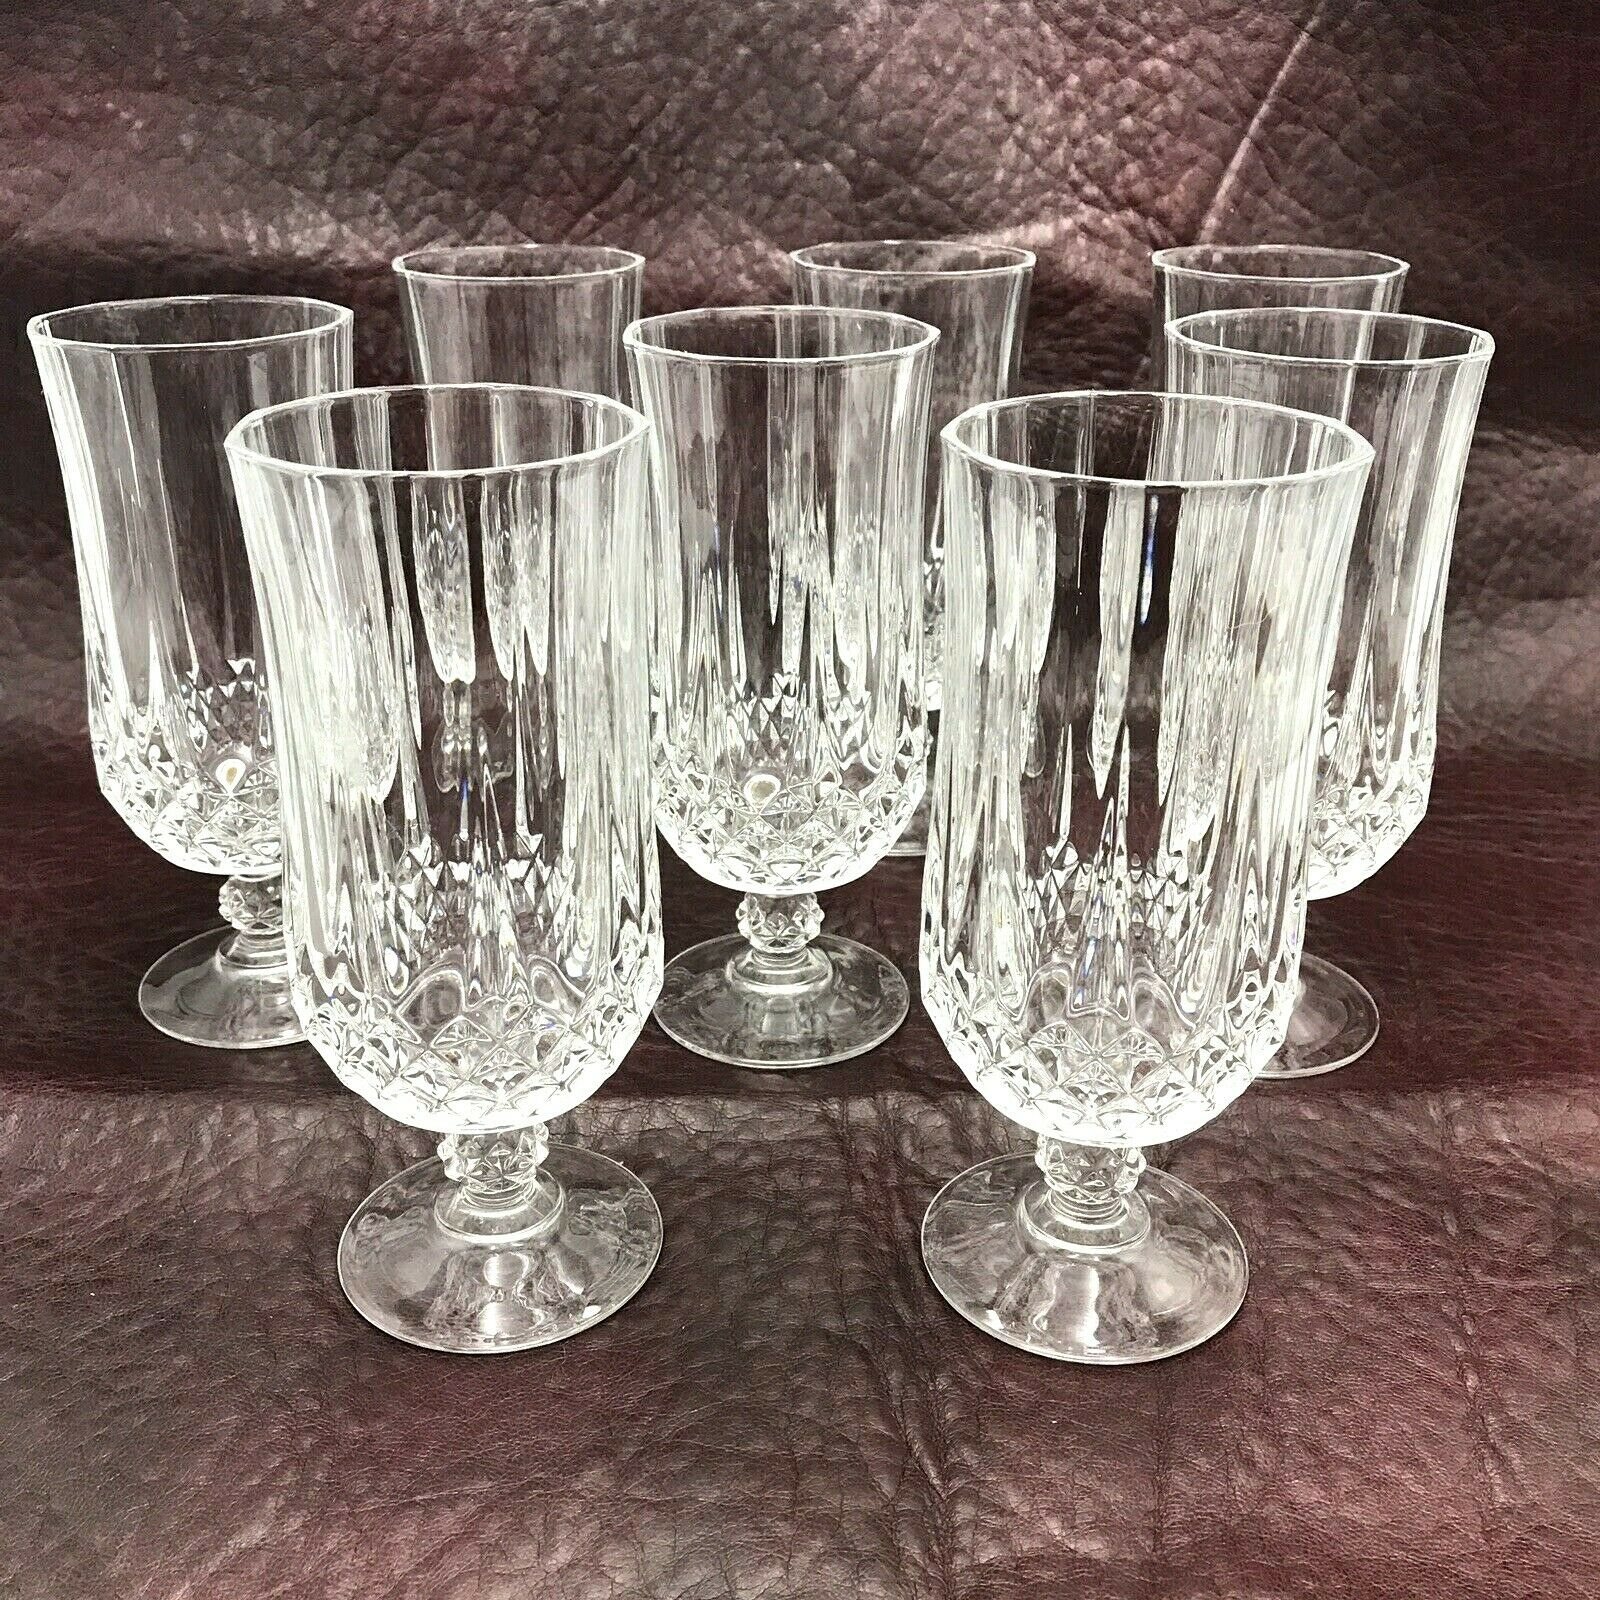 "8 Longchamp Cristal d'Arques 24% Lead Crystal Stemmed Iced Tea Glasses 12 oz 7"" Longchamp"